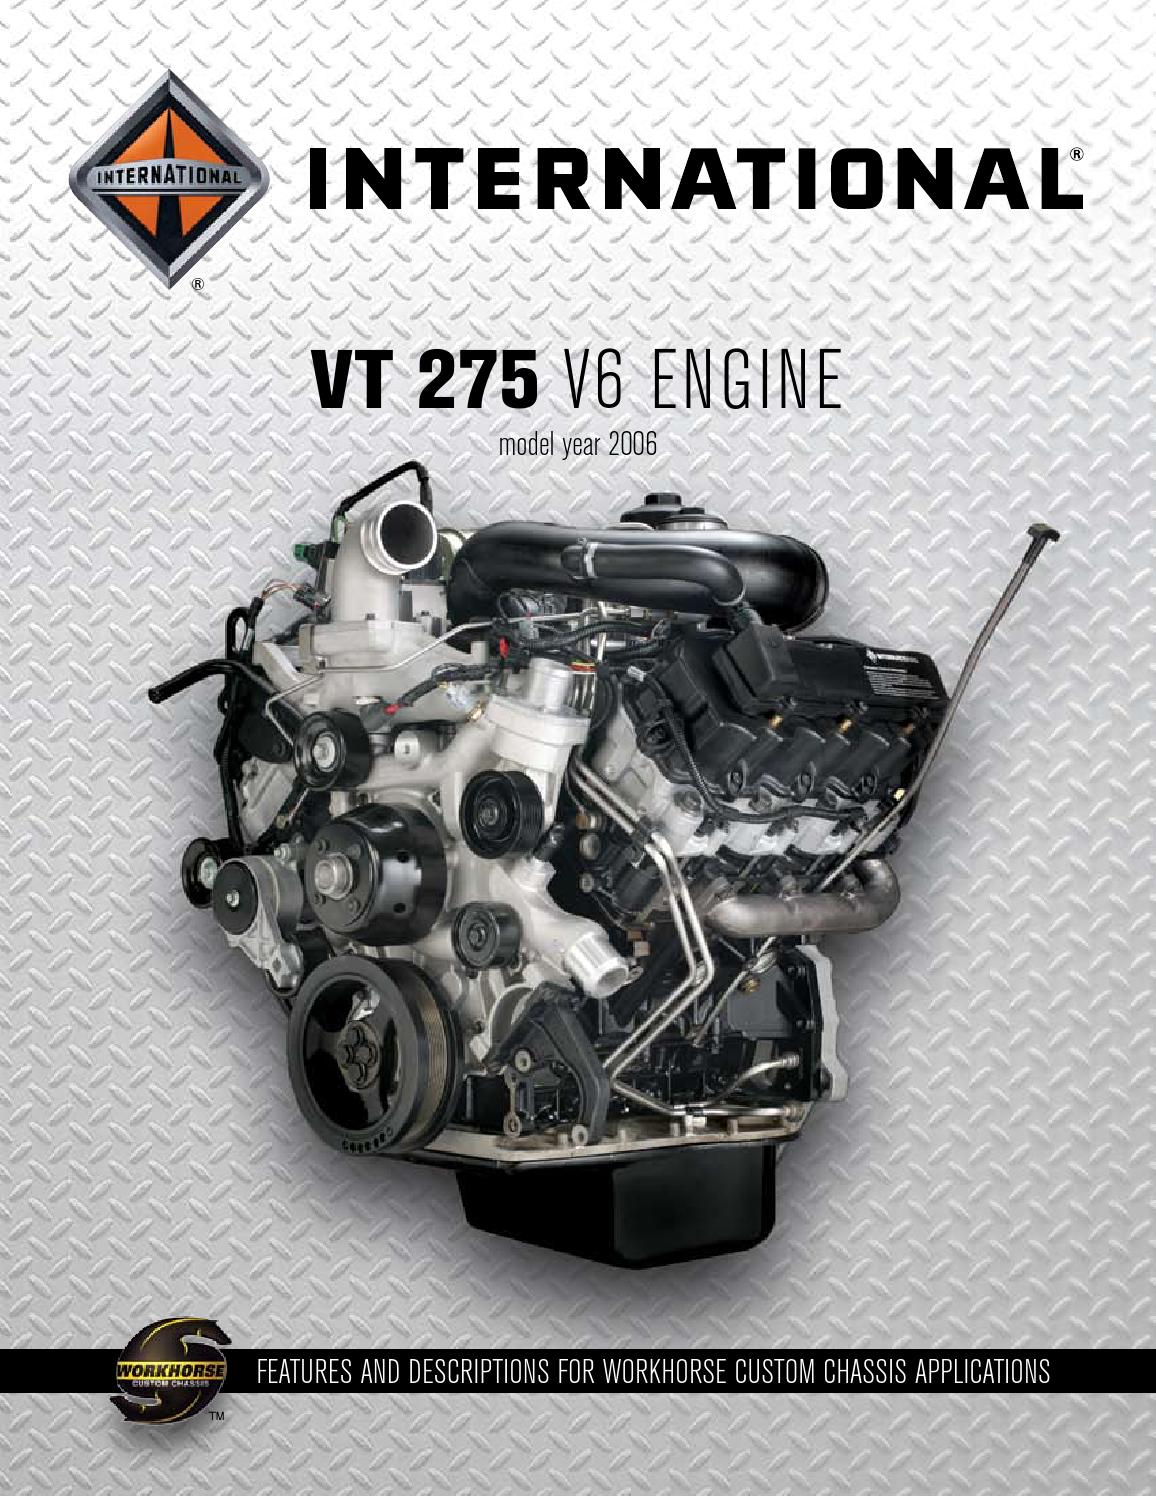 international vt 275 2006 engine catalog 4 20 06 by jhonatan león international vt 275 2006 engine catalog 4 20 06 by jhonatan león issuu